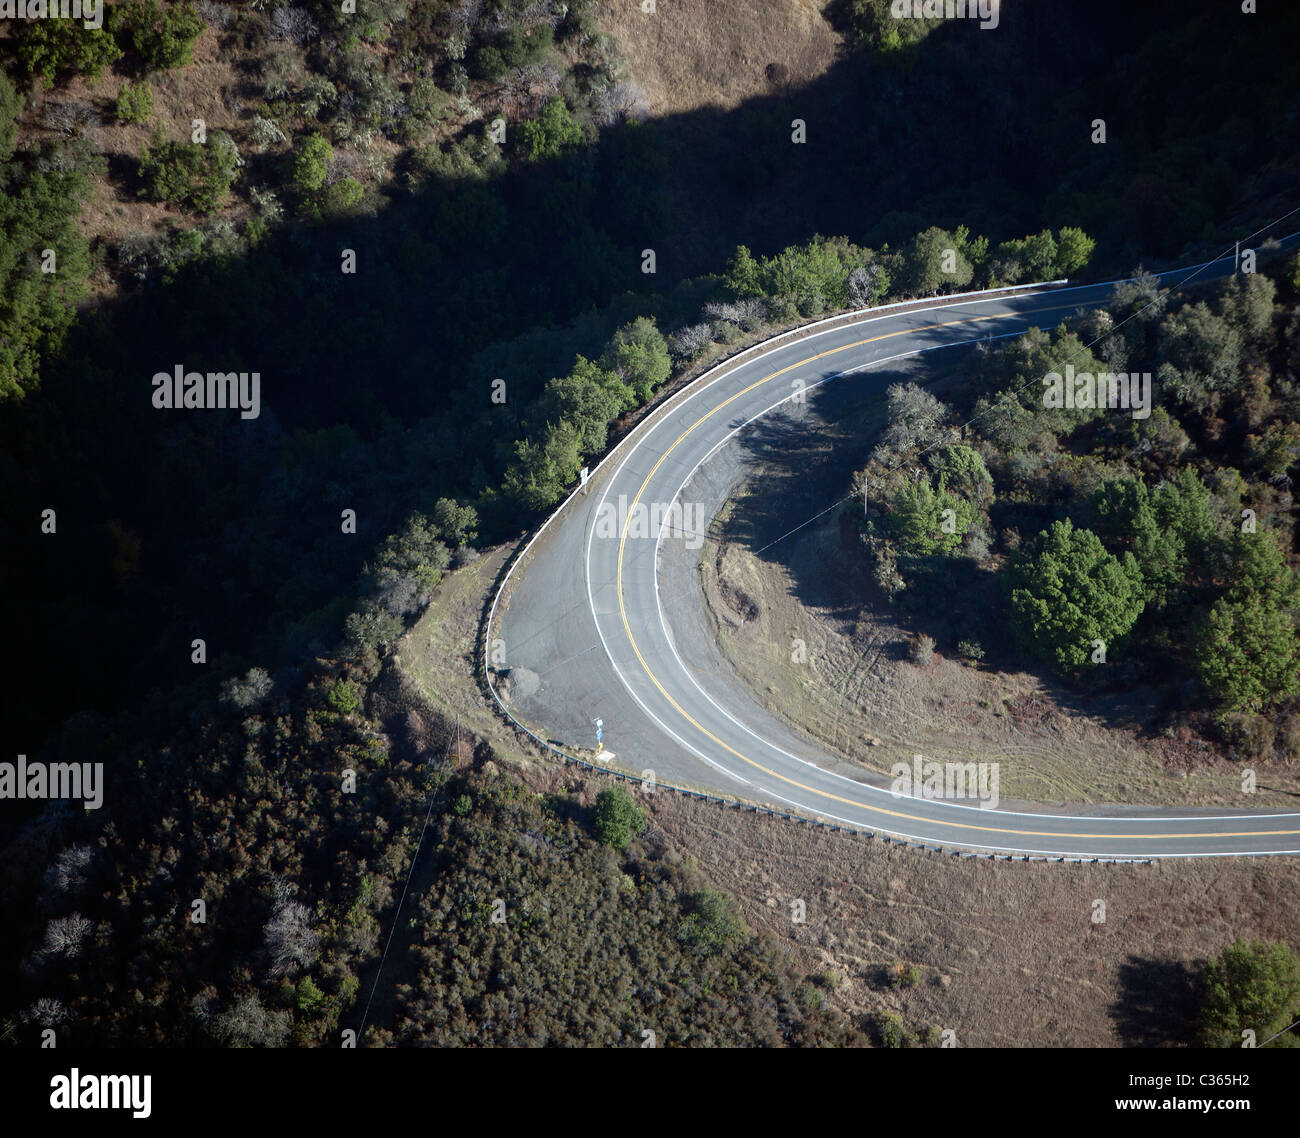 aerial view above steep turn Hopland grade route 175 Mendocino county California - Stock Image